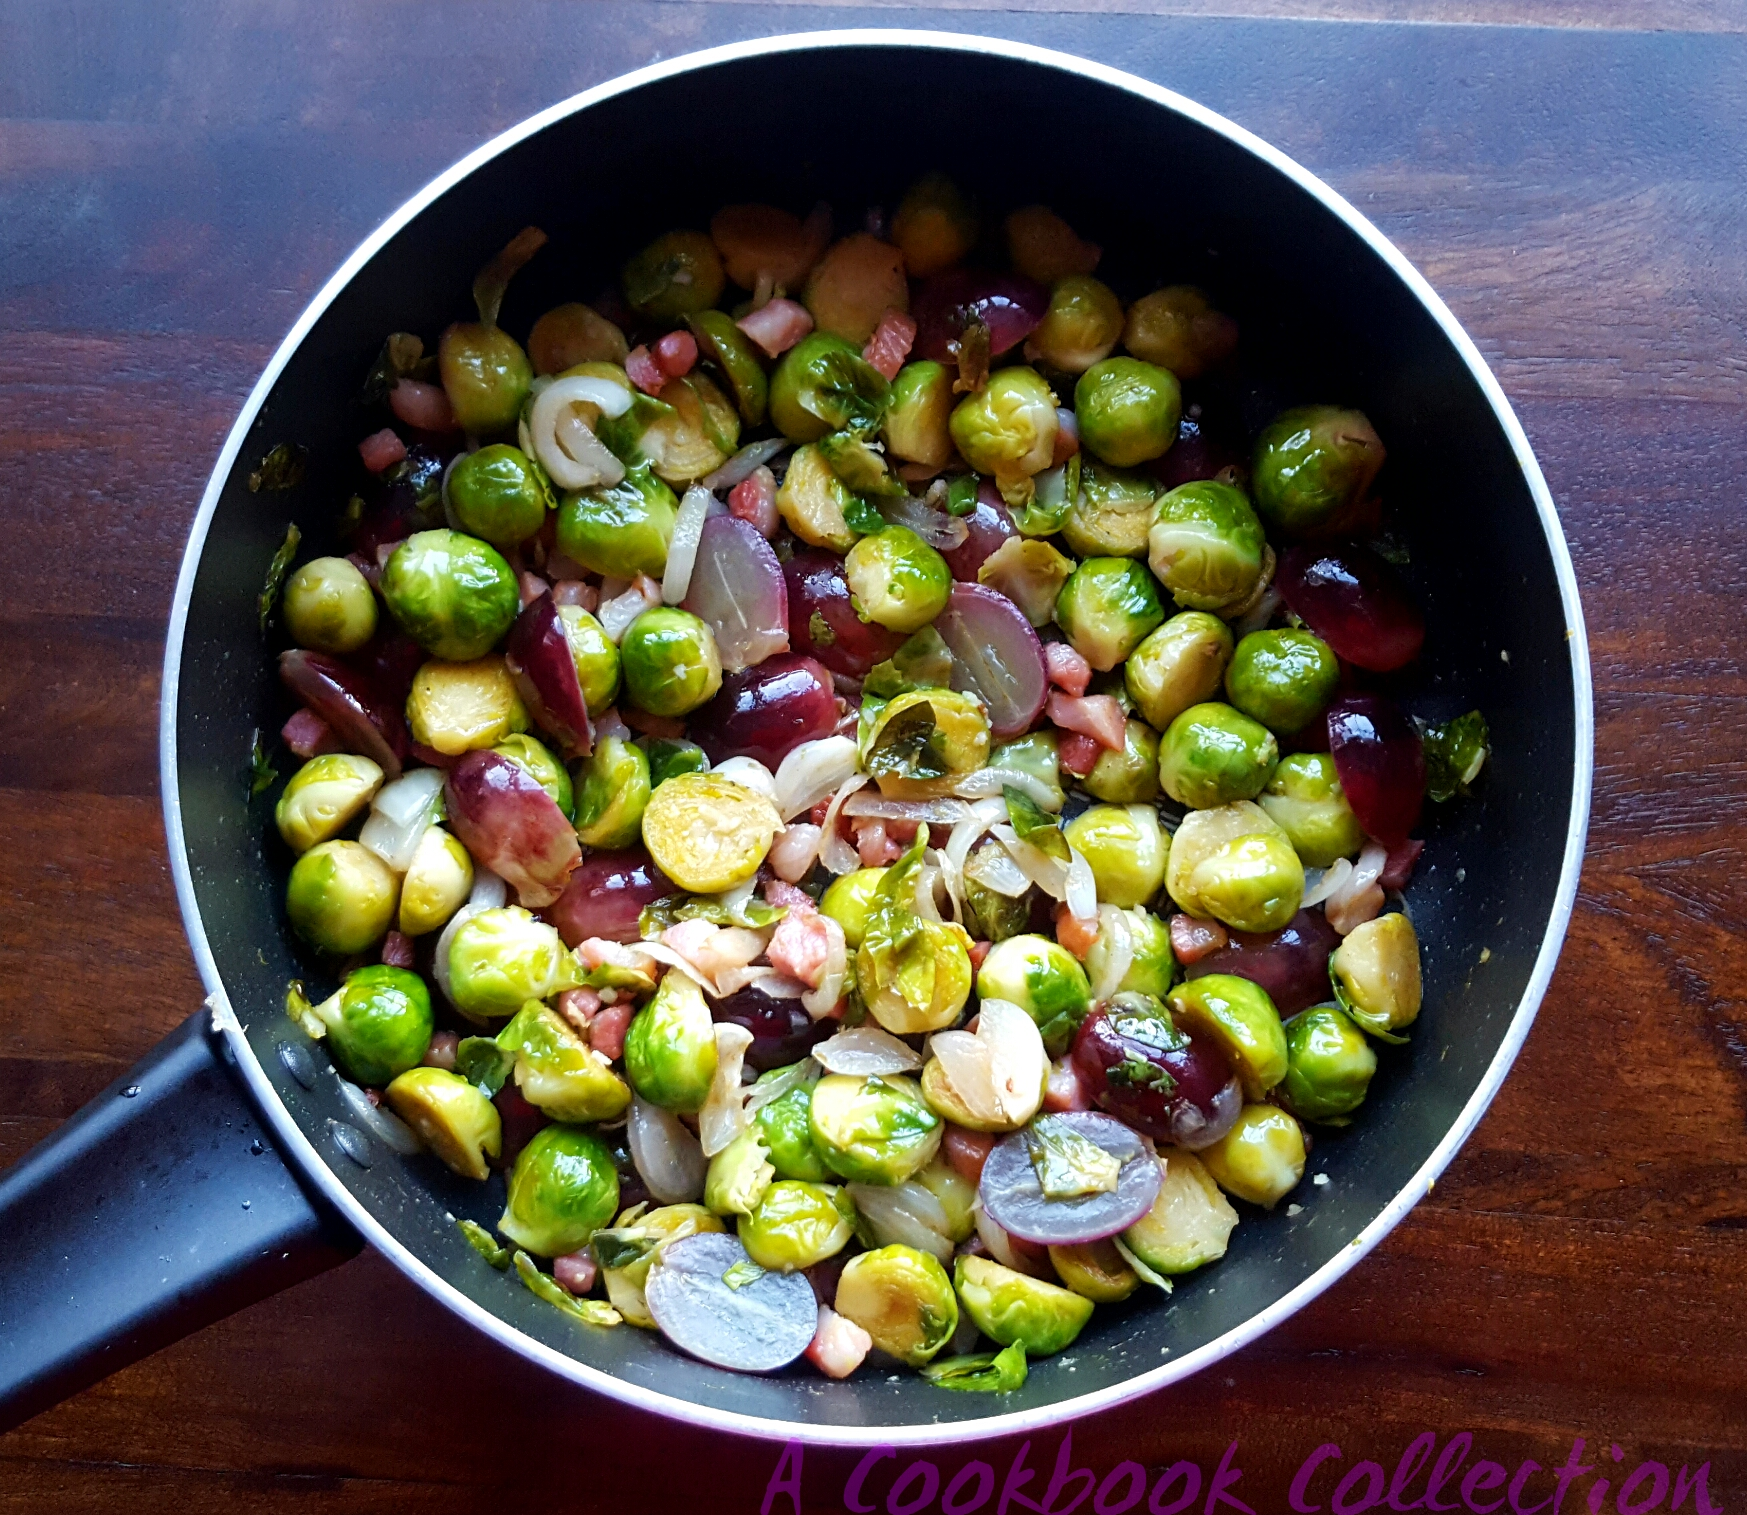 brussels-sprouts-with-pancetta-and-grapes-a-cookbook-collection